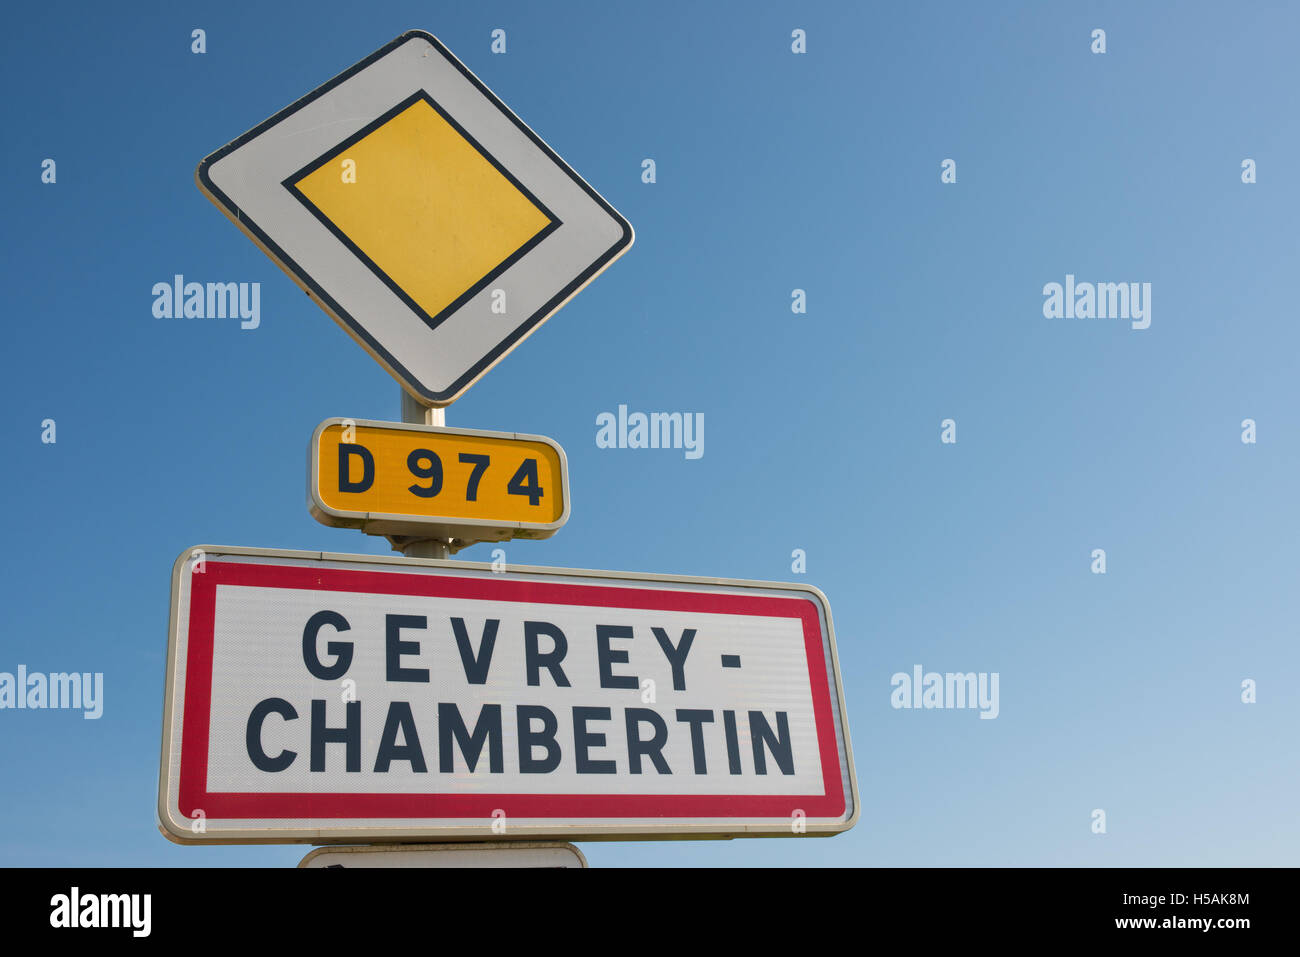 The sign at the village of Gevrey Chambertin denoting the beginning of the conurbation on the route D974, Cote d'Or, - Stock Image